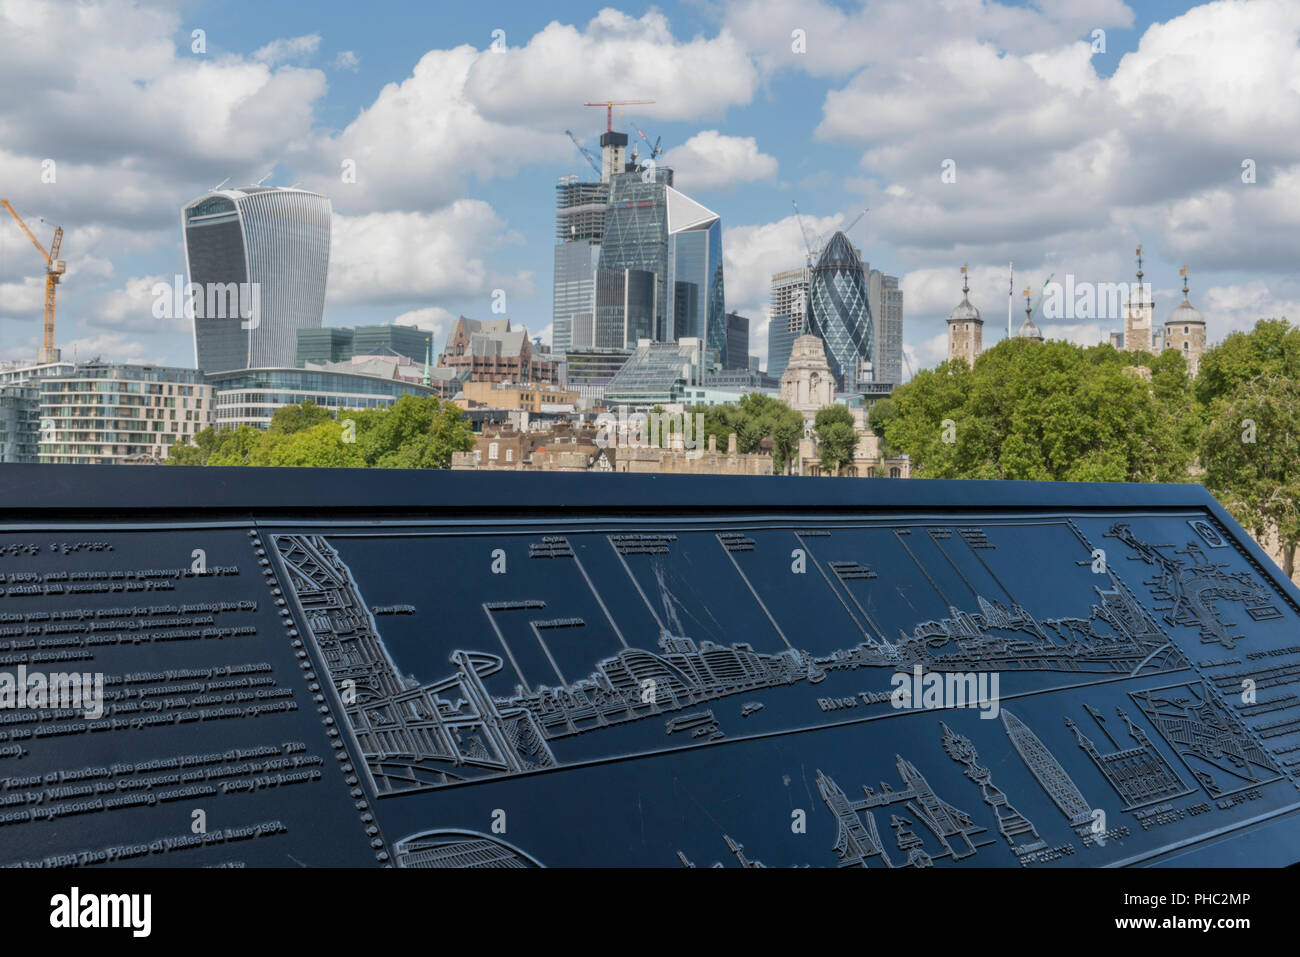 city of london skyline viewed from tower bridge with an information plaque or buildings map in the foreground. - Stock Image